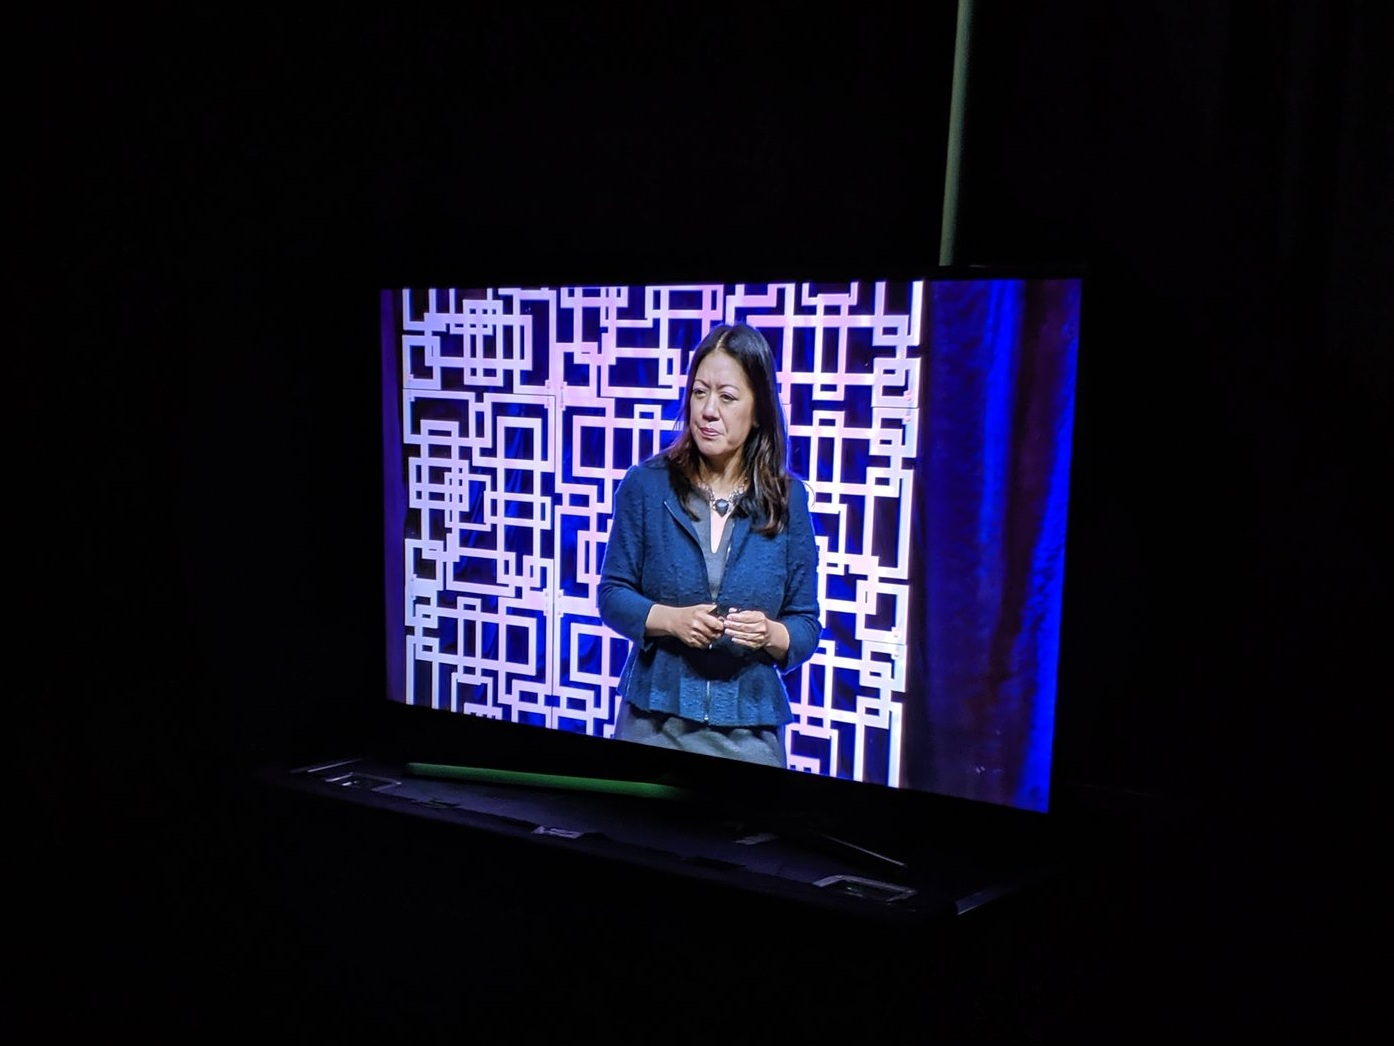 Had the huge pleasure of thanking author     Charlene Li      (   of     Groundswell     fame), who was one of this year's closing keynote speakers. She spoke on disruptive leadership, social media, and member engagement. Here watching her talk from the green room before heading back onstage to thank her and close the conference.